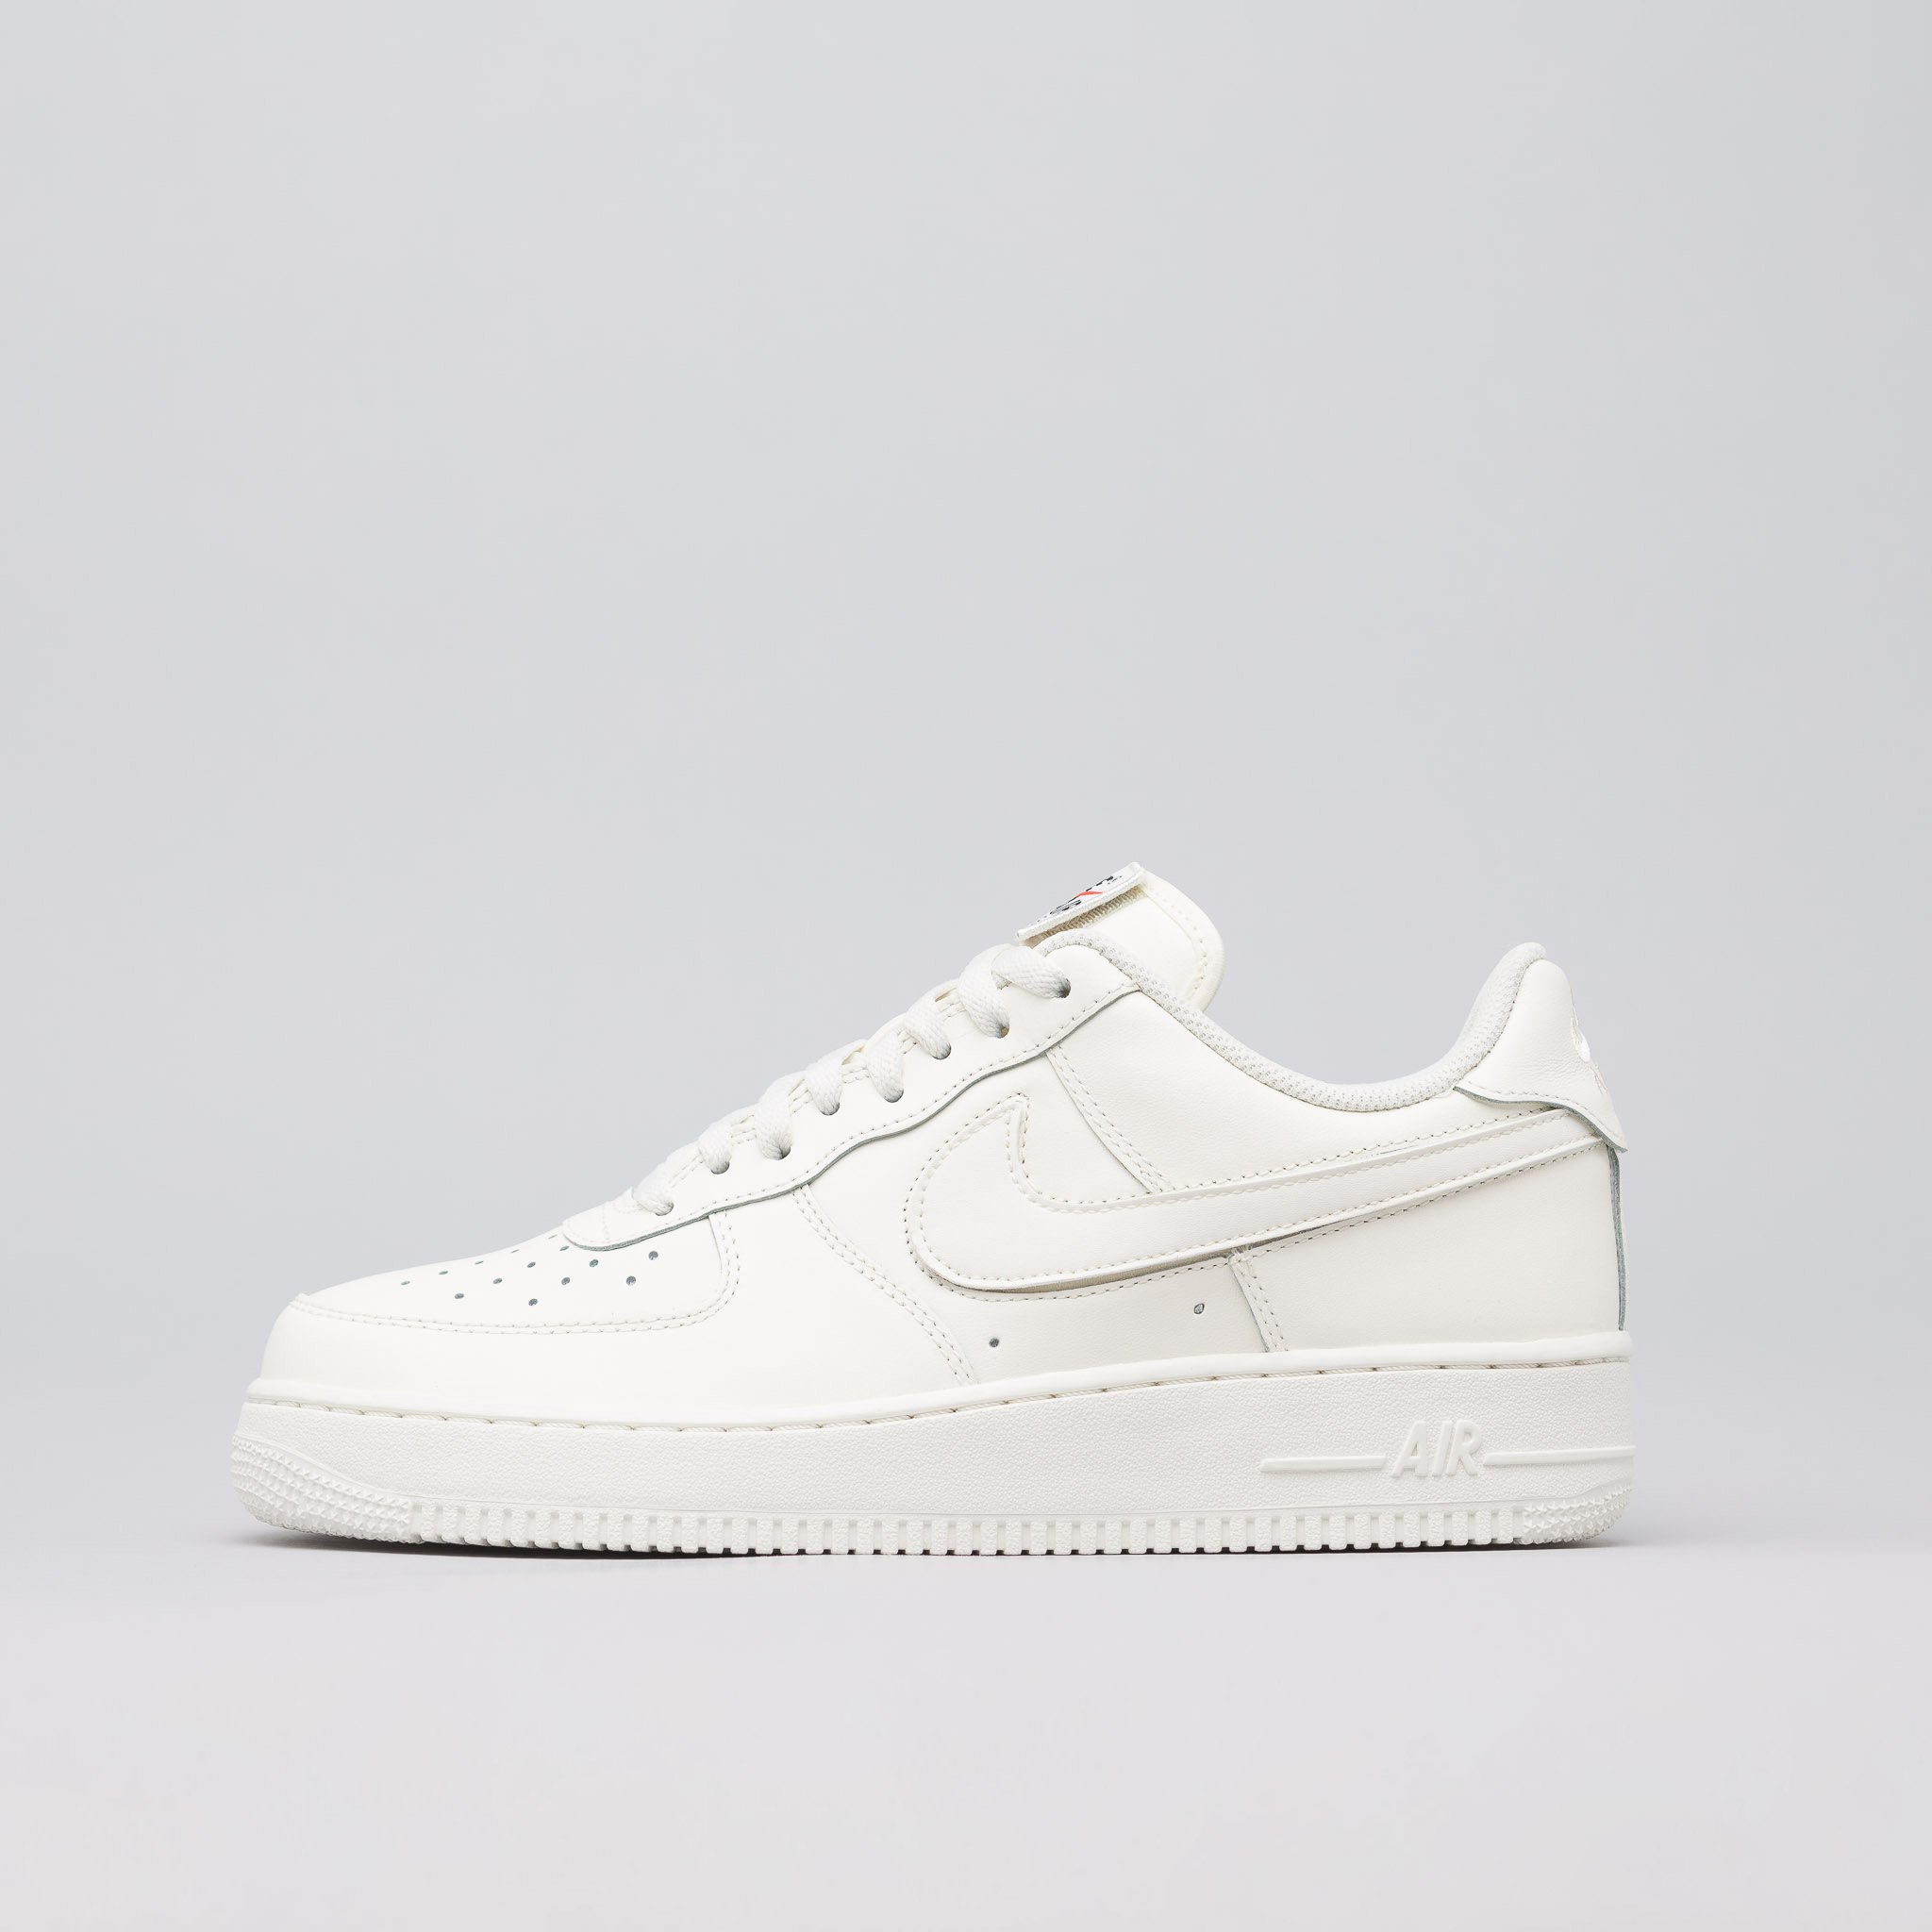 ba1cdacdfe21 Nike Sail Nike Interchangeable Swoosh Pack Air Force 1 QS Size 10 ...